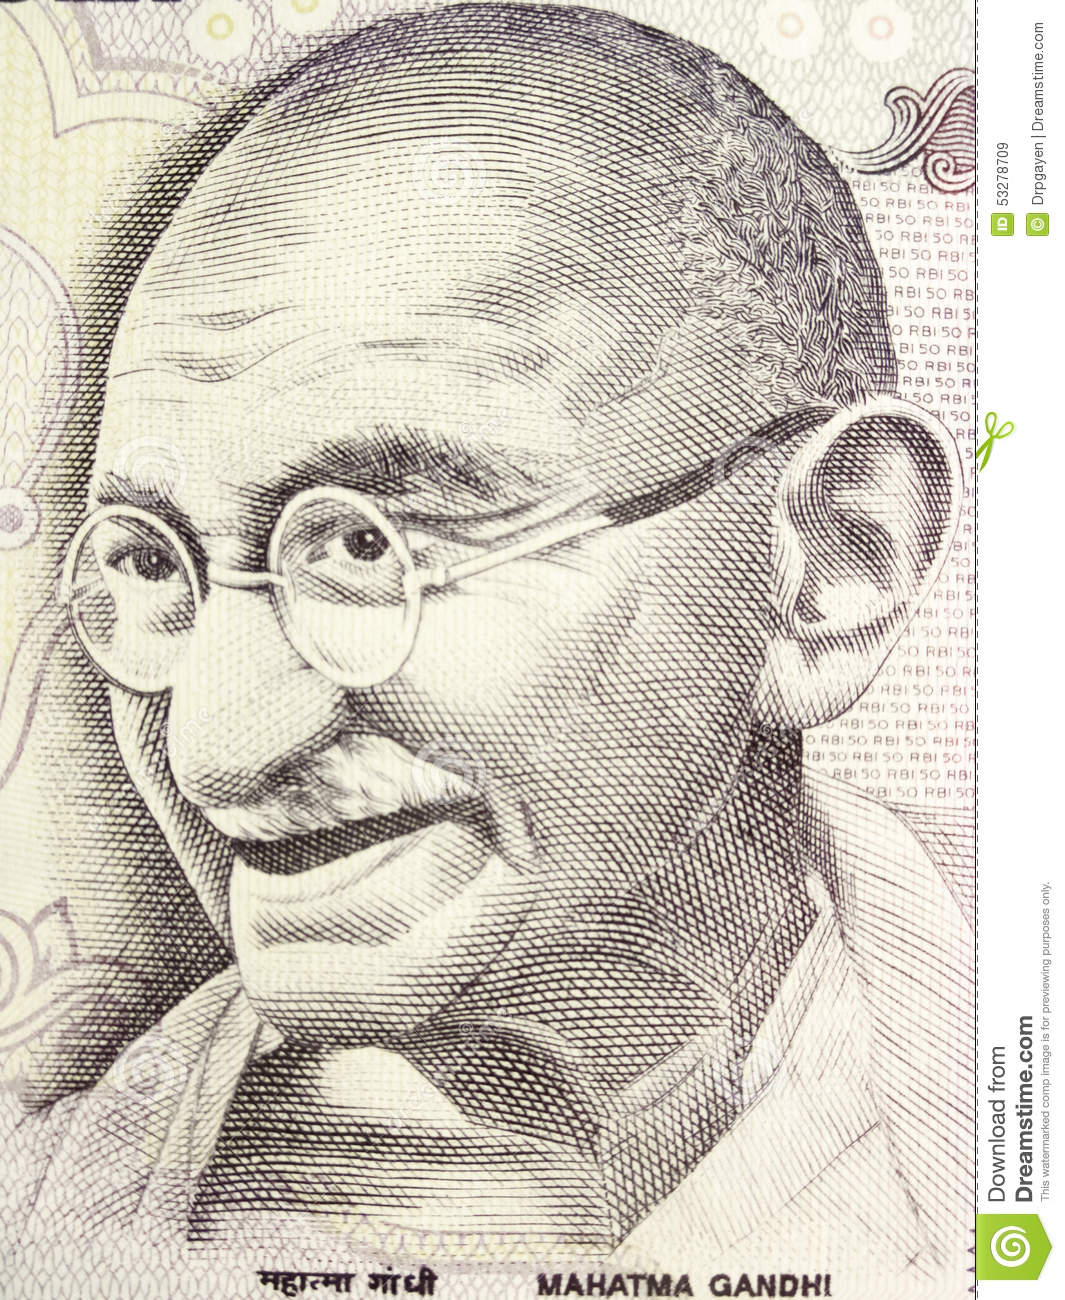 management style of mahatma gandhi The most influential leader of the 20th century the leader i am referring to is mahatma gandhi gandhi provided leadership by example he exhibited the perfect marriage between personal morality and public action.